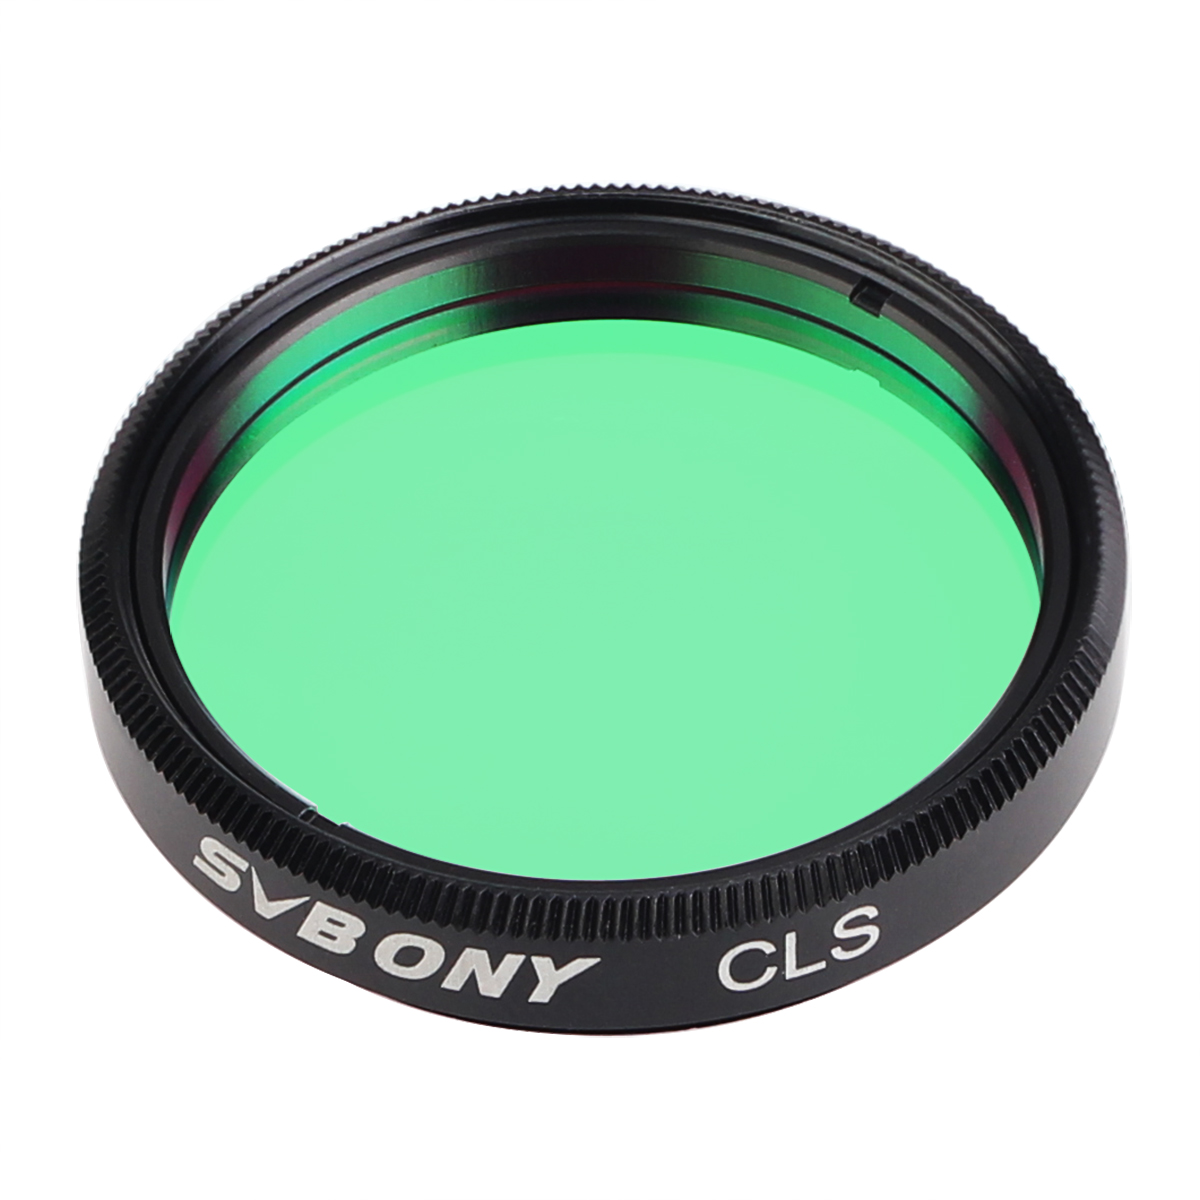 "Svbony 2/""cls Deep Sky filters for Telescope 2/"" eyepiece cuts light pollution"